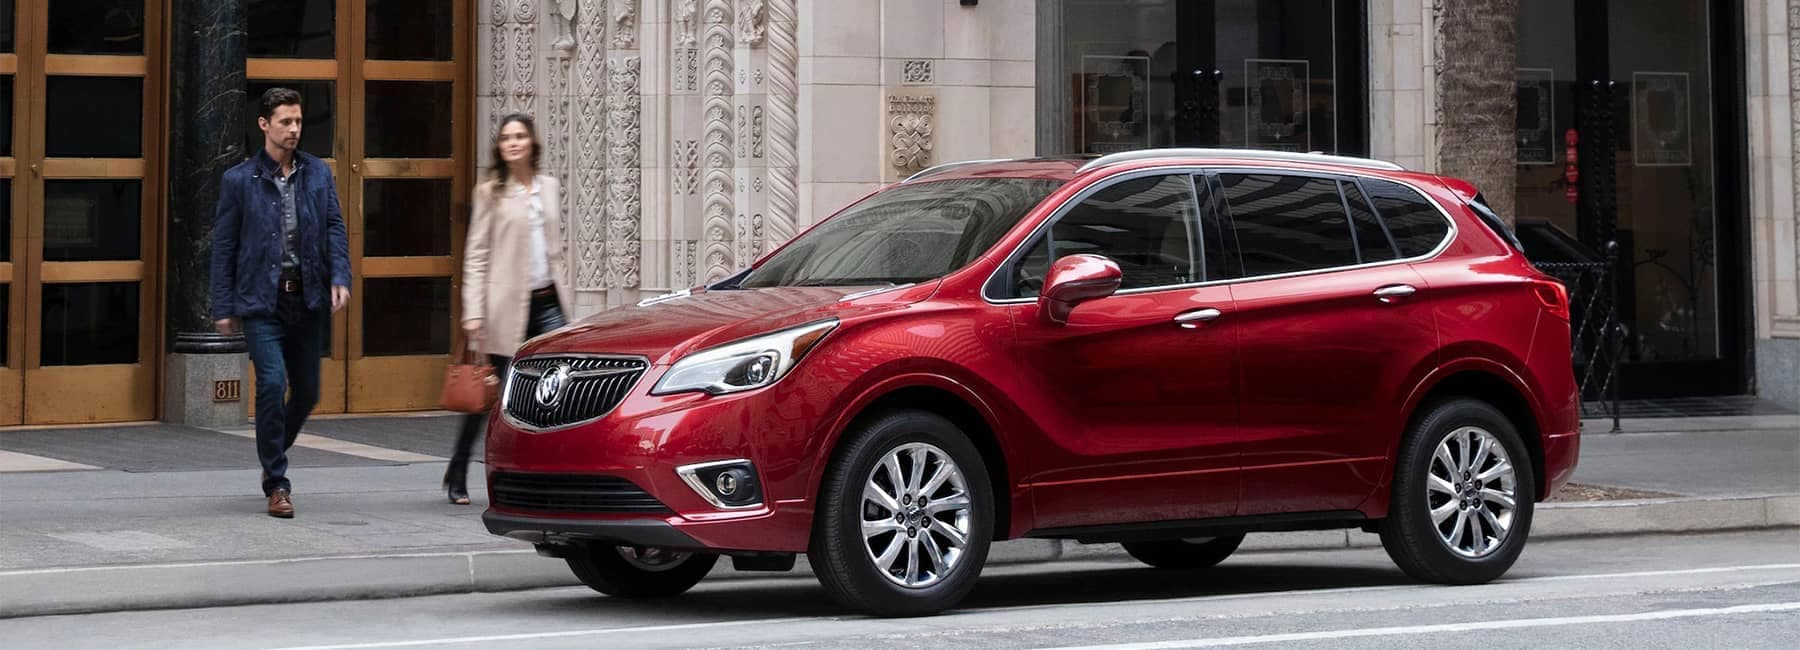 2020-Buick-Envision-Compact-SUV-with-Man-and-Woman-Walking